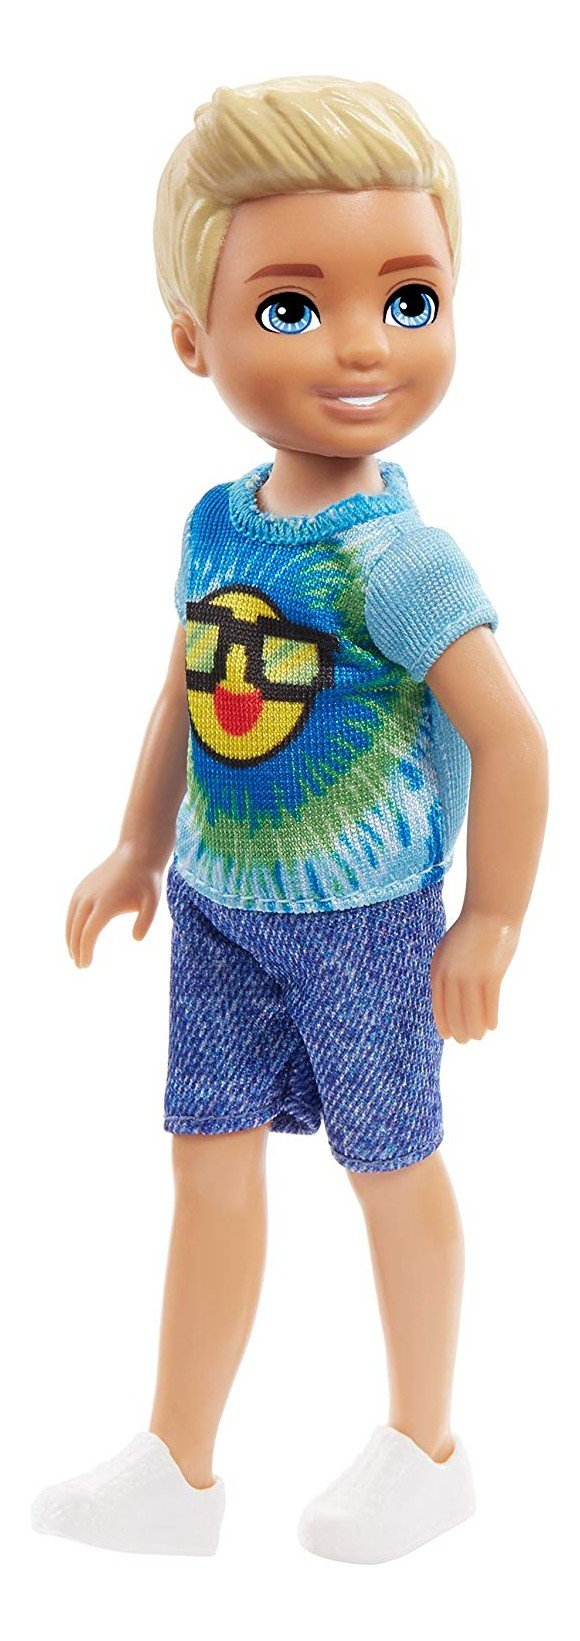 Barbie - Club Chelsea - Emoji T-shirt Dukke